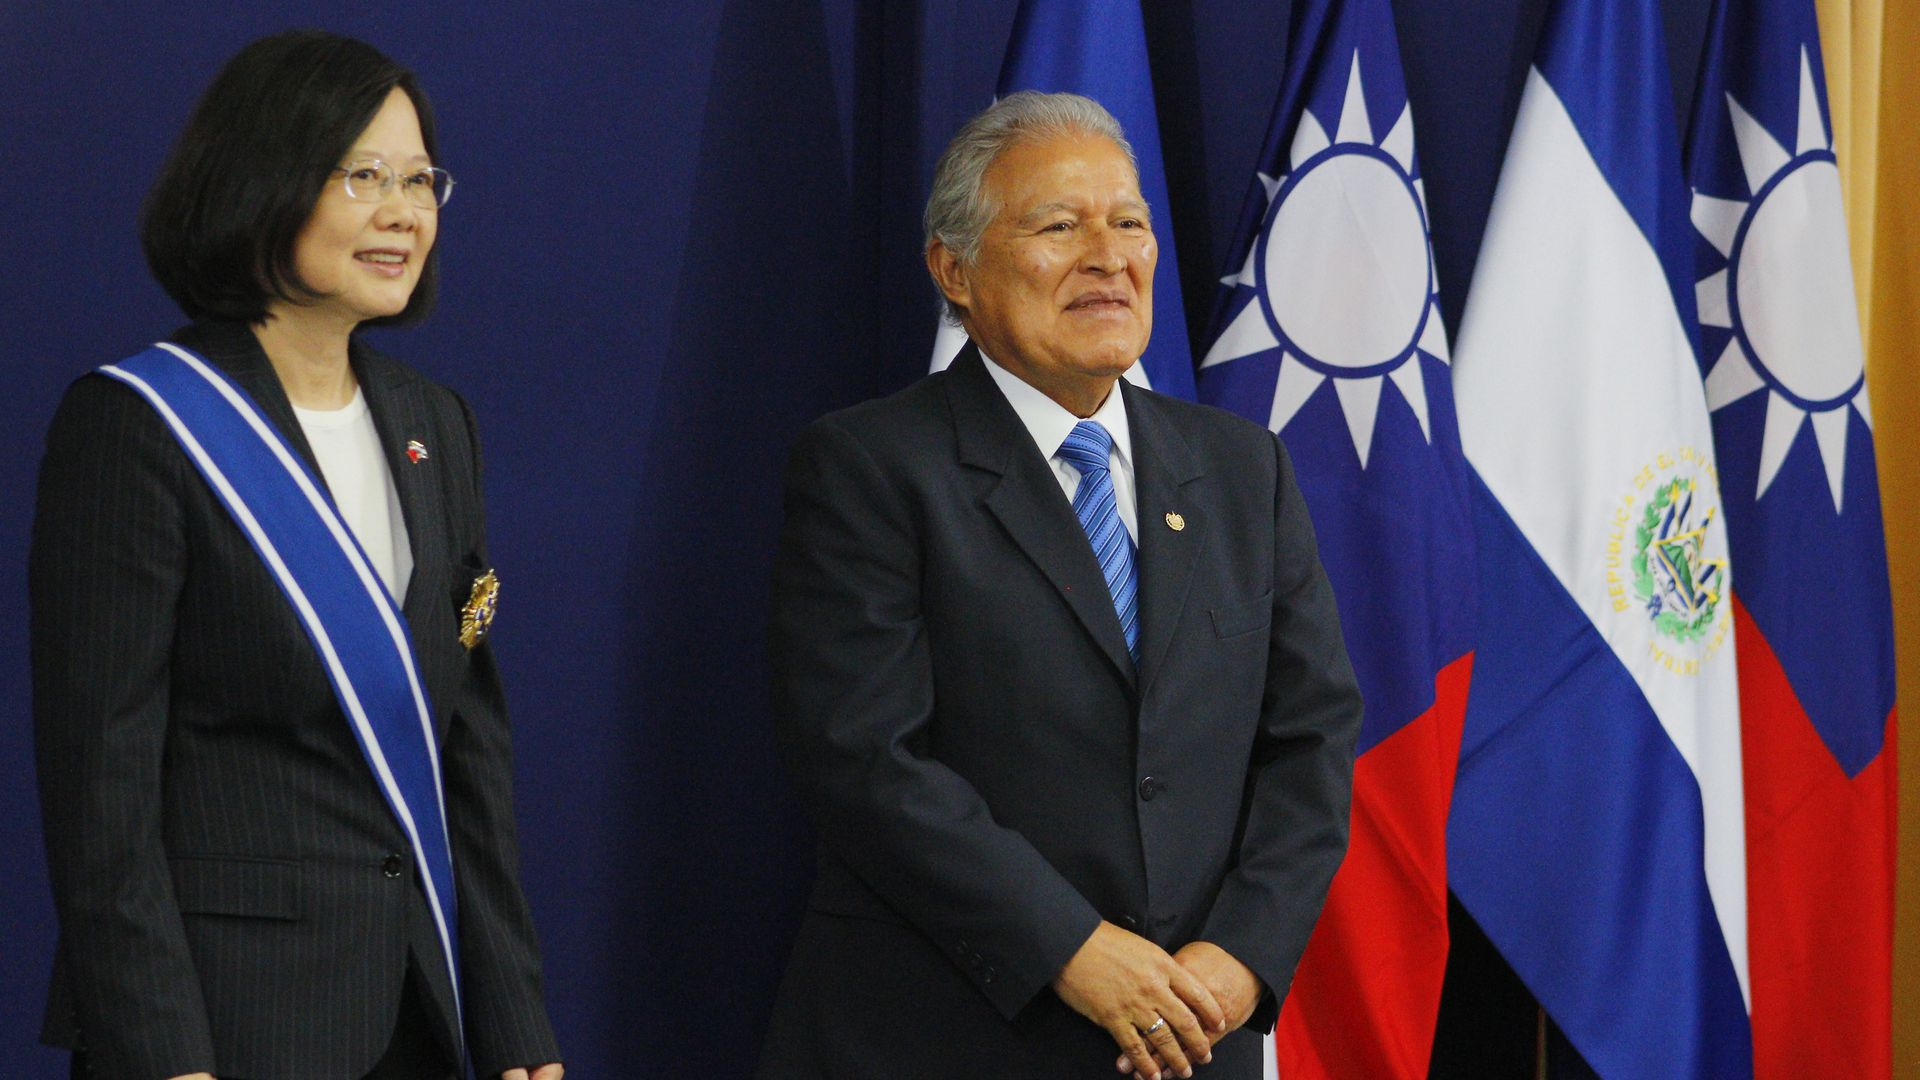 Tsai Ing-wen President of Taiwan (L) and Salvador Sanchez Ceren (R) President of El Salvador pose for the media